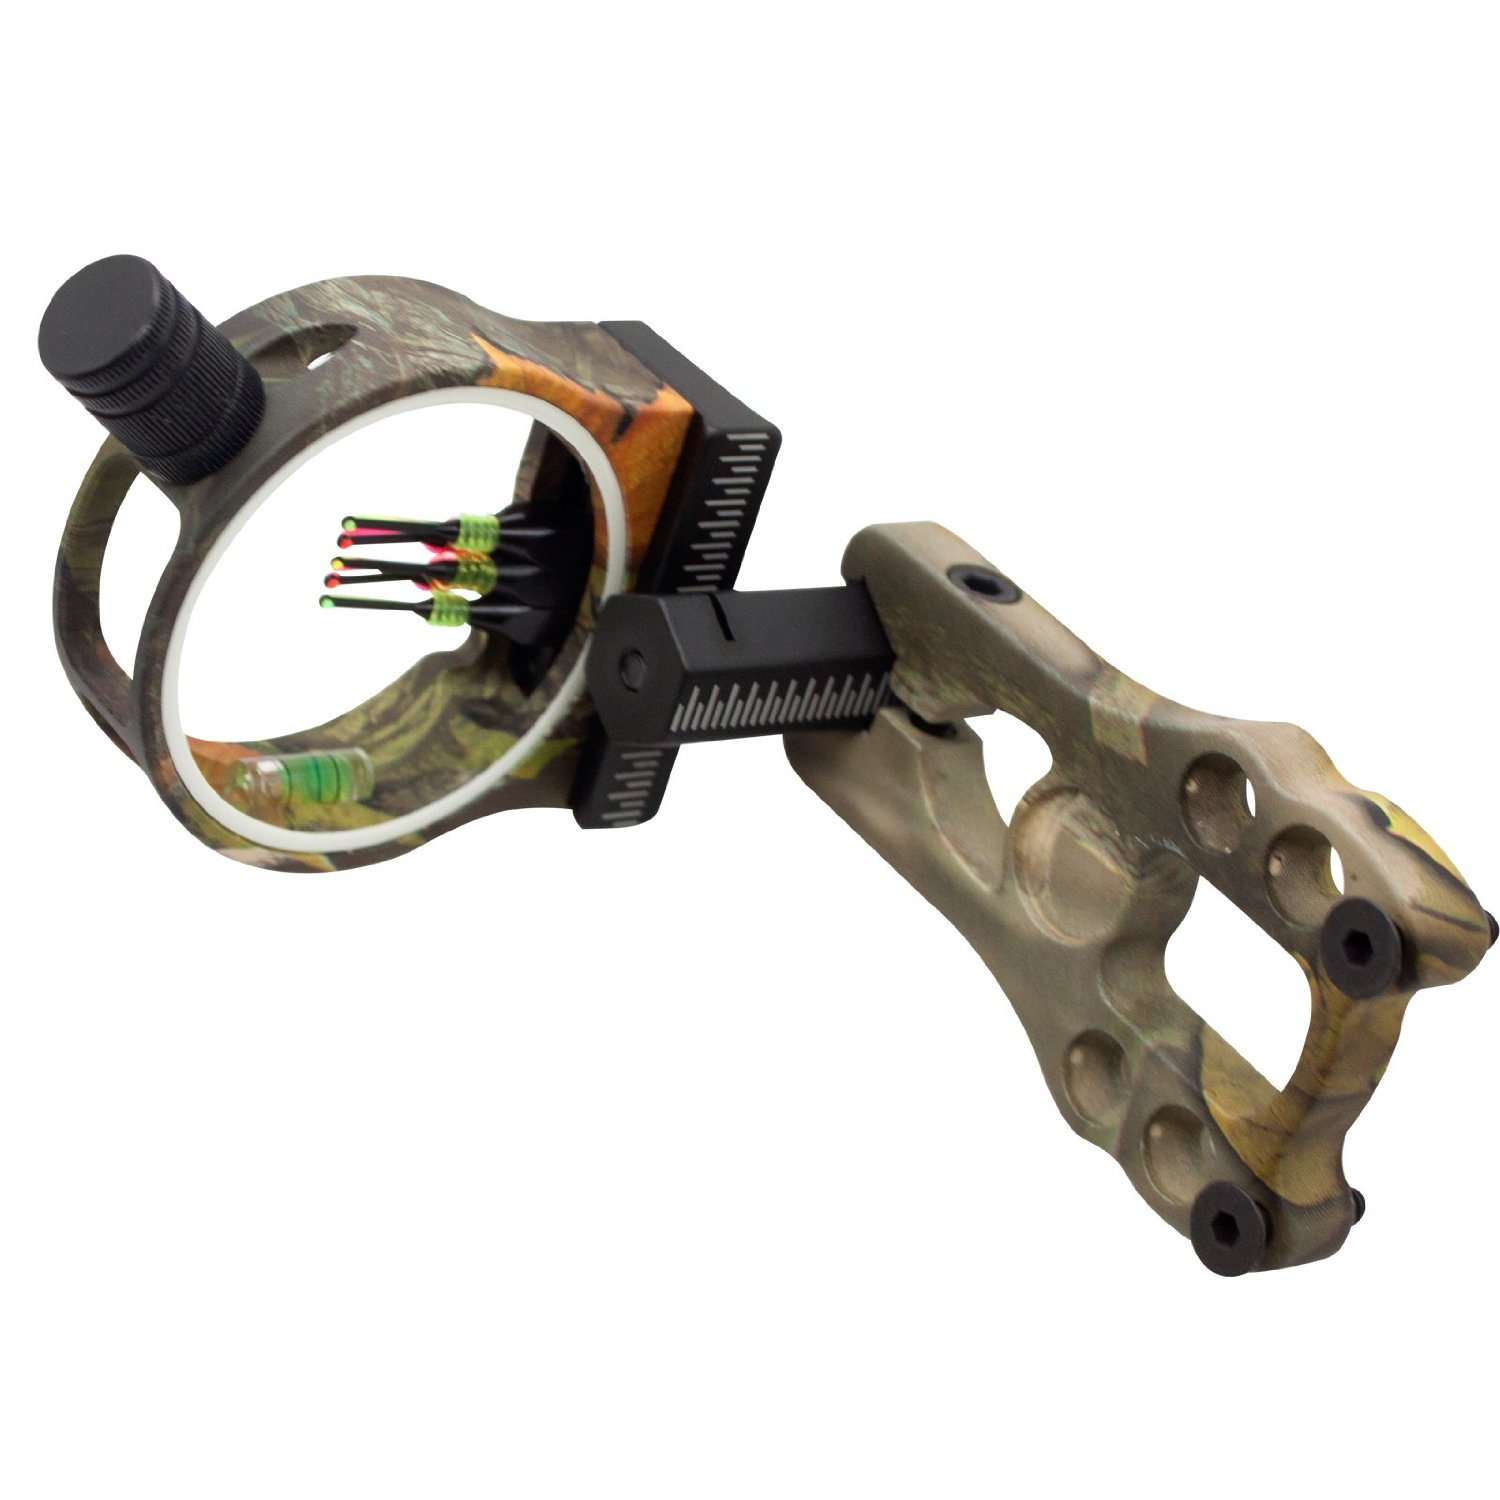 e5e10 3 Pin Brass Pin Aluminum Machined Left or Right Bow Sight Aluminum Compound Bow Sight 3 Pin Fiber Optics 0.029 Fiber Brass Pin